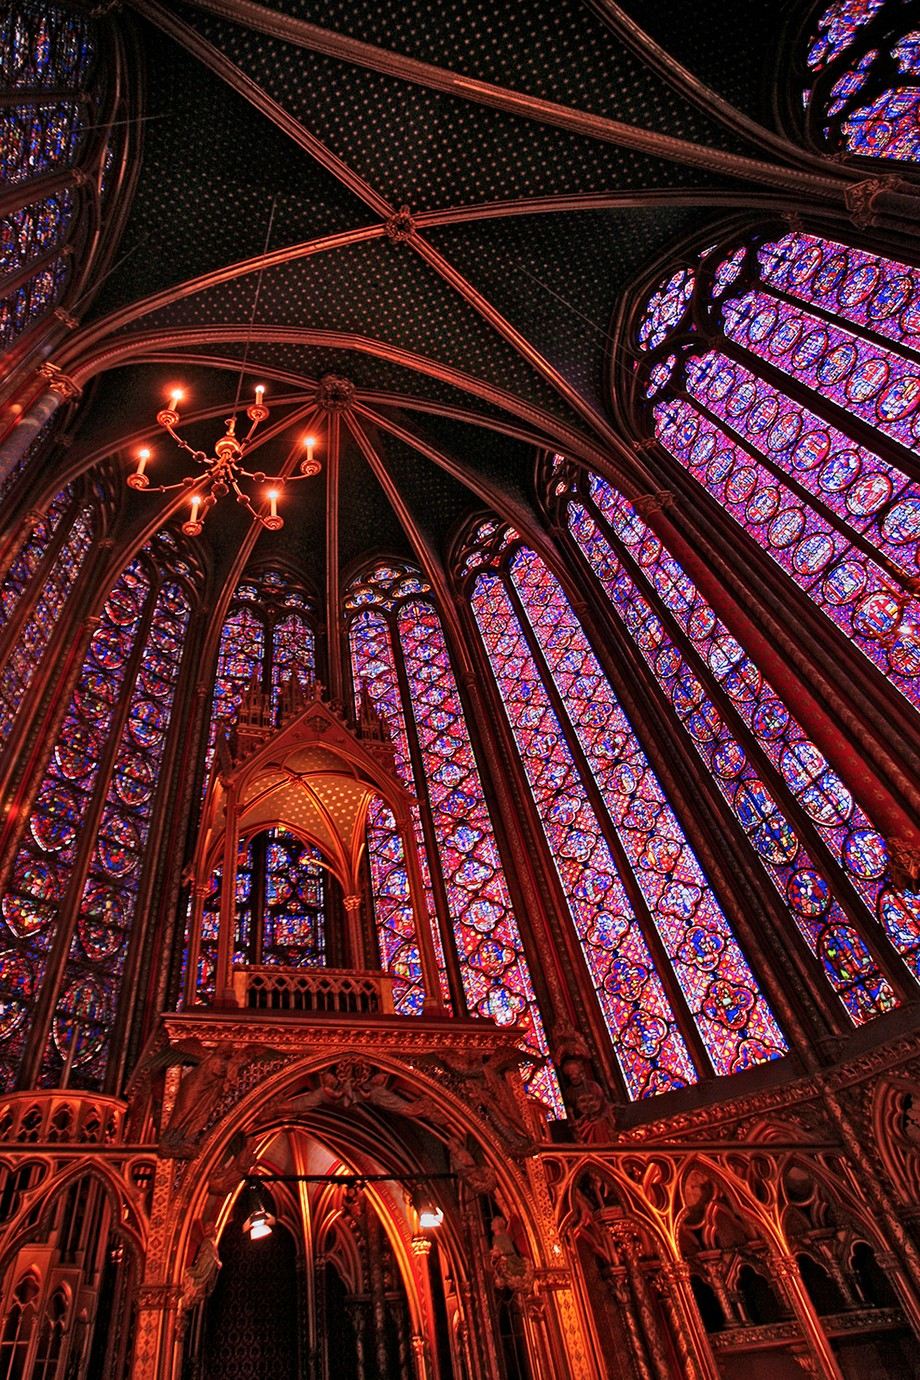 We went to Sainte-Chapelle to hear a string concert. My habit of always having a camera with me in Paris paid off. The warm sunset light through the stained glass windows, combined with the music and the chapel's acoustics, made for an absolutely transcendental experience.  Details: Canon EOS 5D, Canon 17-35 mm lens, at 17 mm, ISO 400, f/2.8, 1/30 sec.